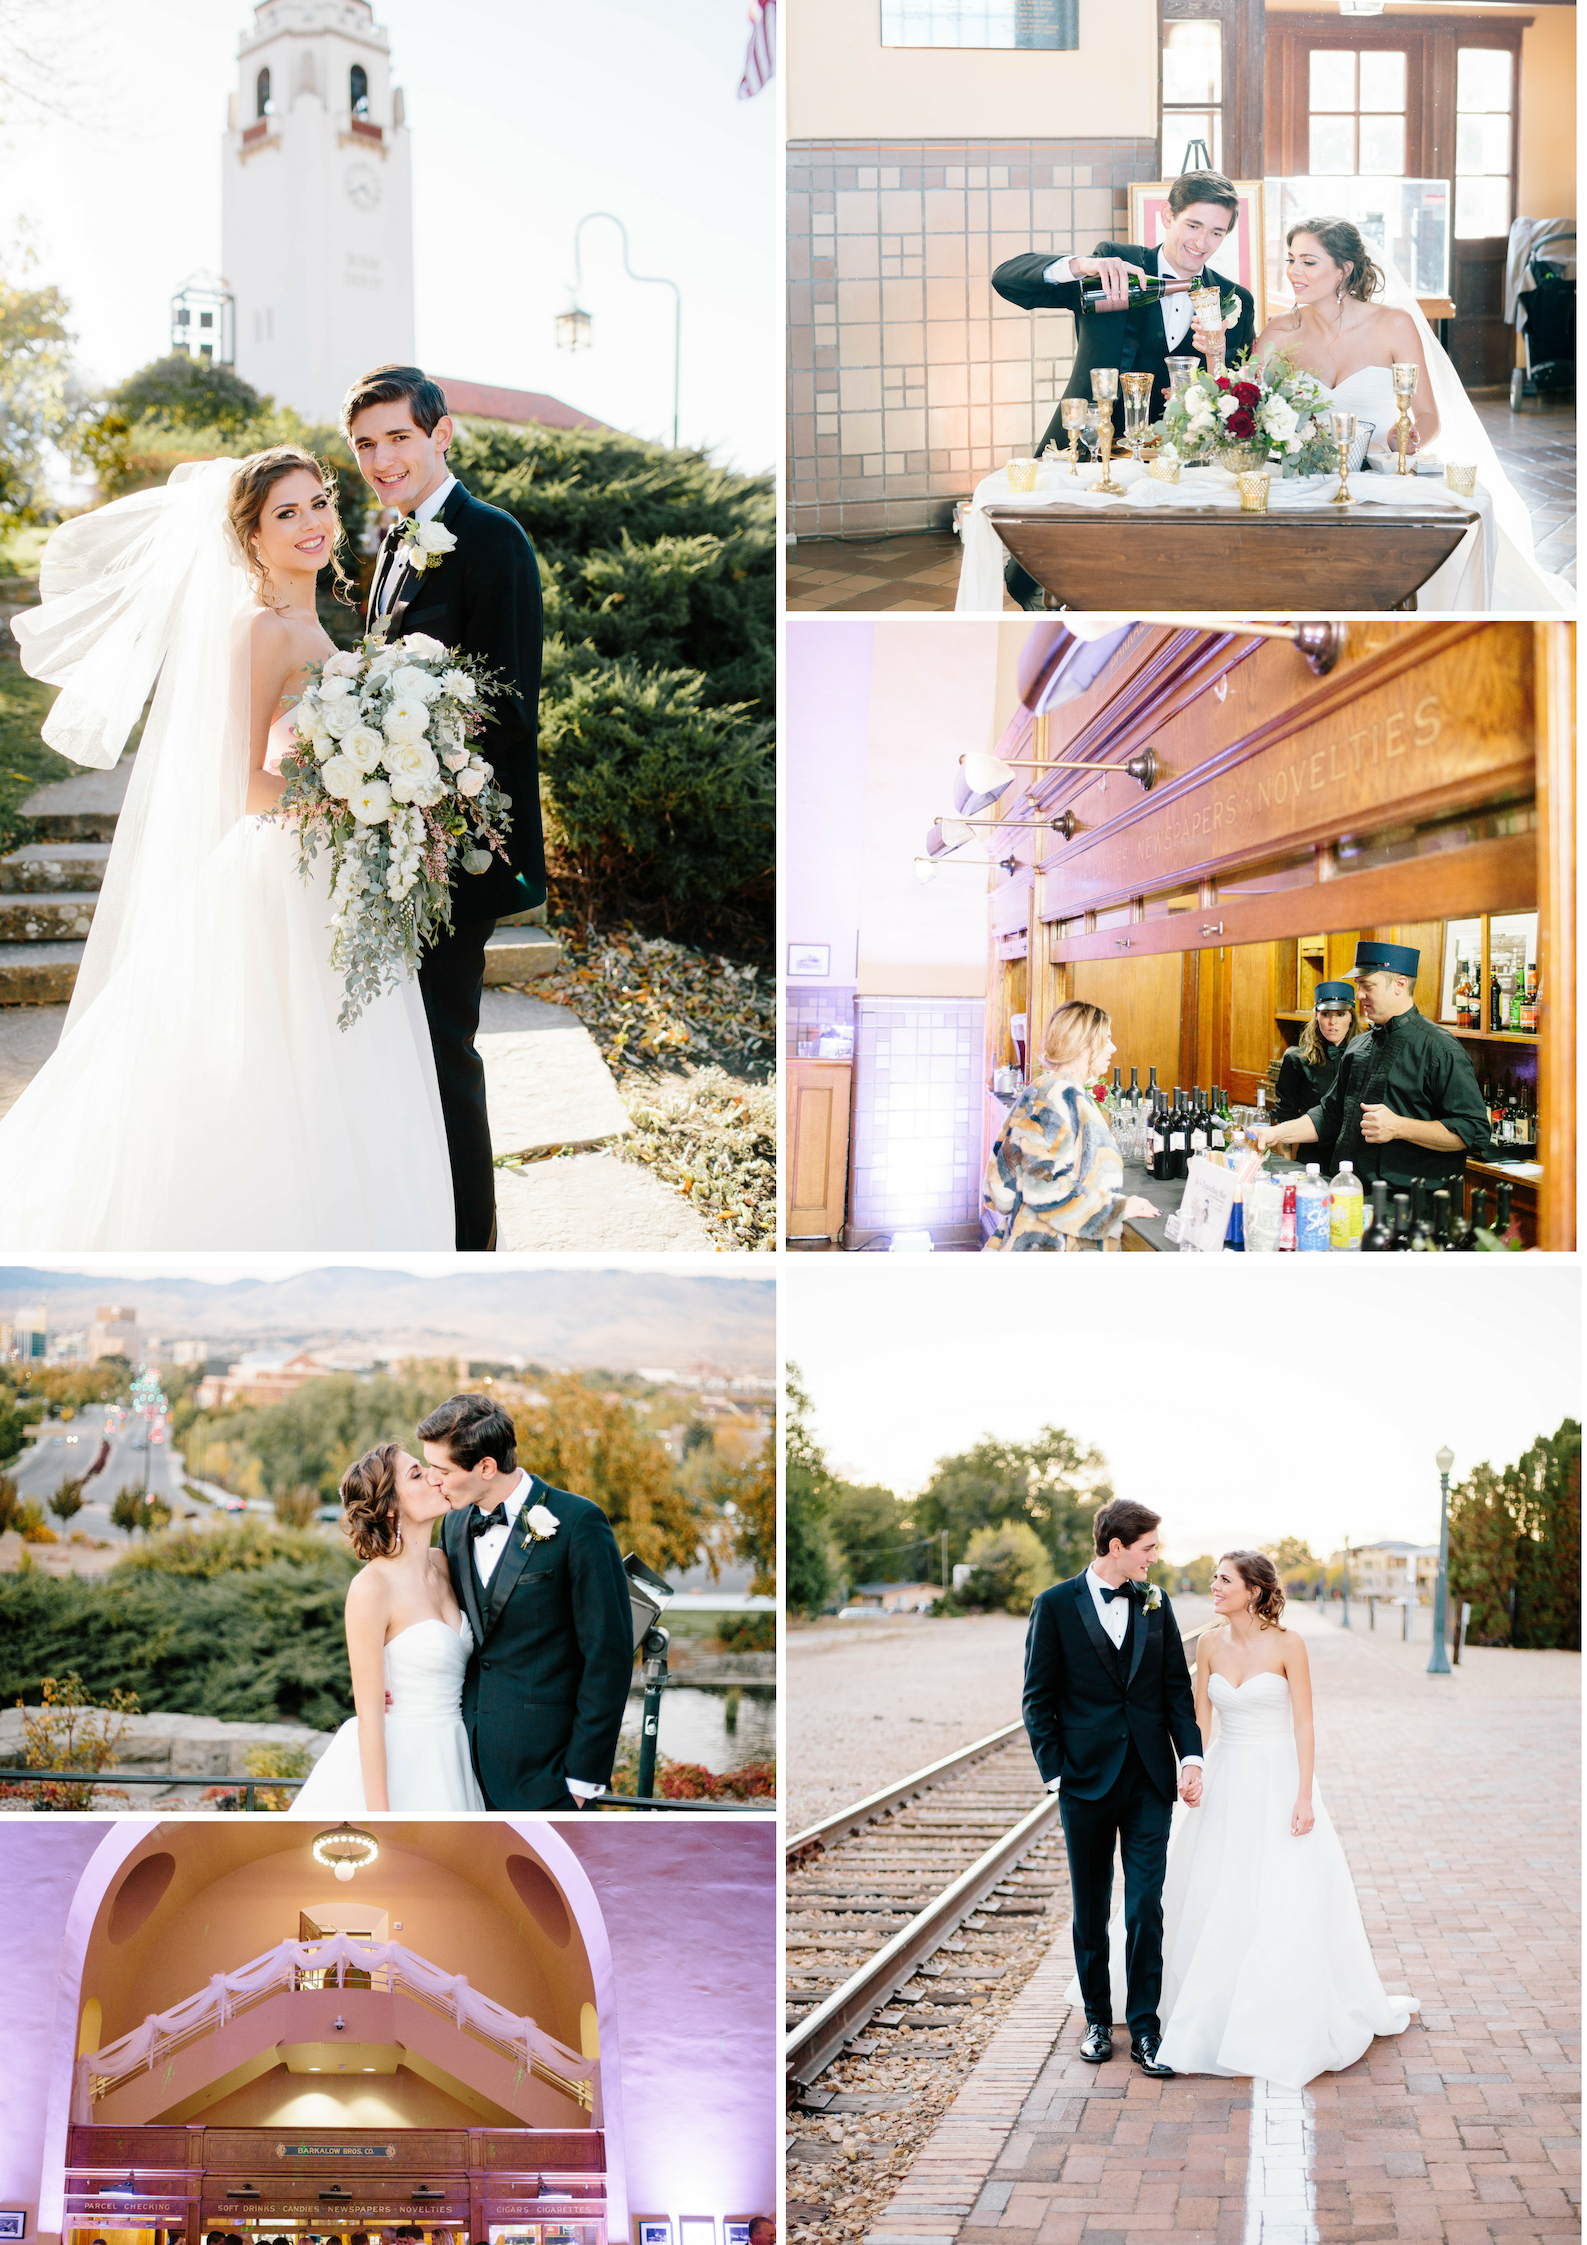 The Boise Depot Wedding- Boise Wedding Venues- Boise Wedding Photographer